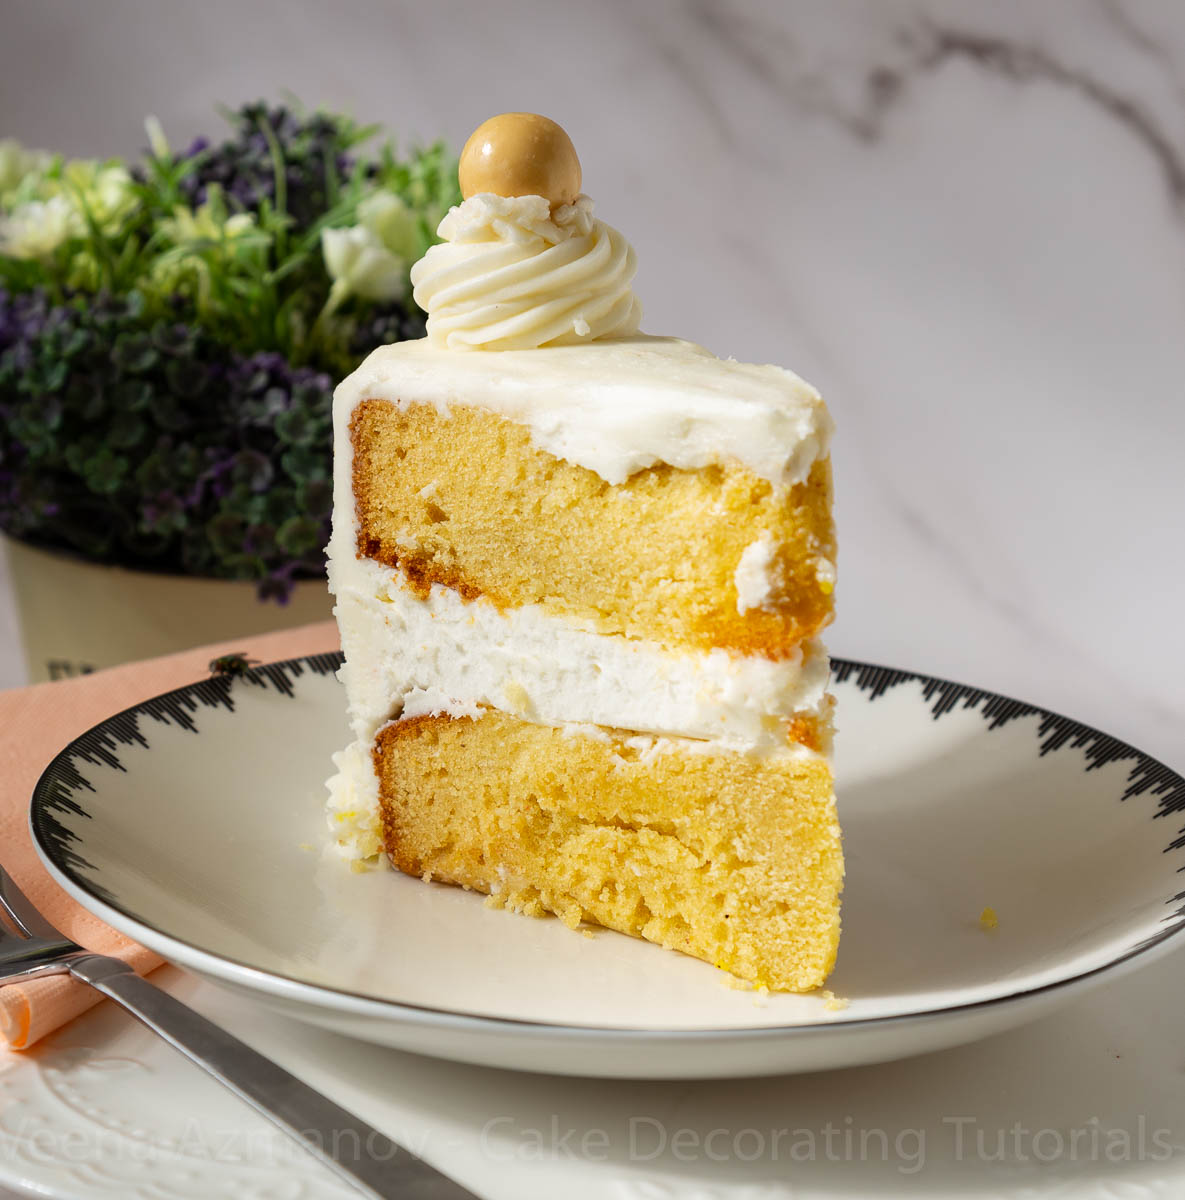 A slice of frosted cake on a plate with vanilla frosting.